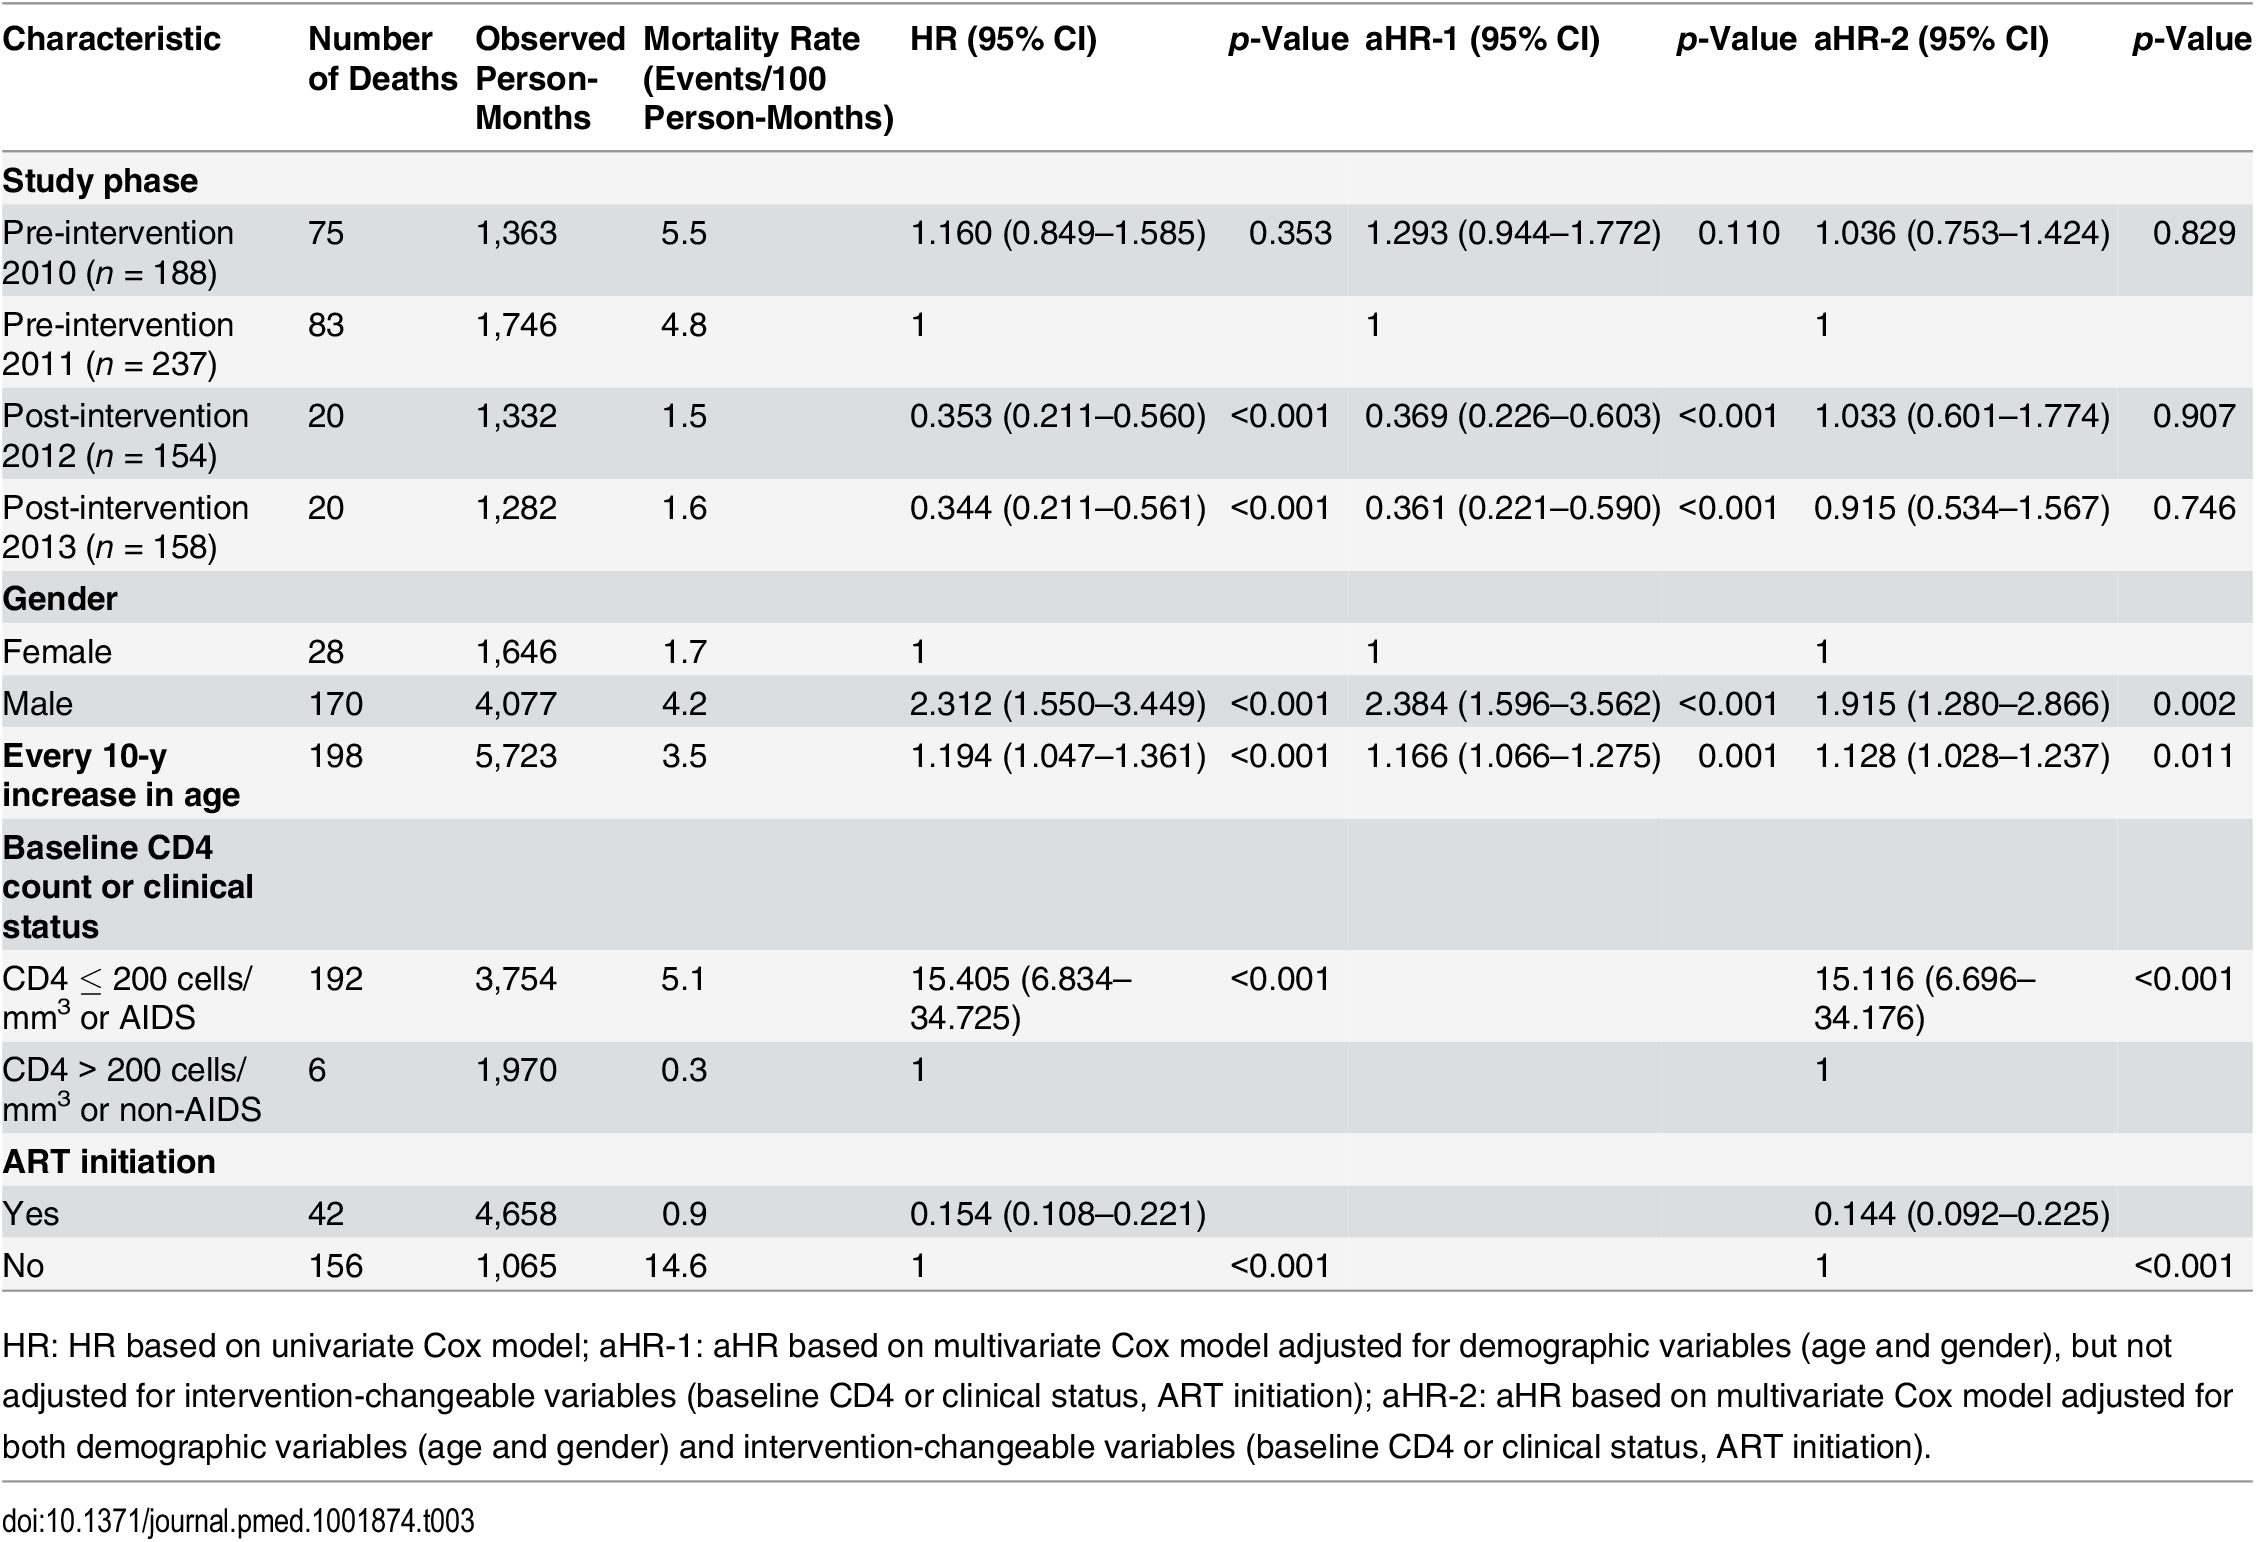 Mortality among newly diagnosed treatment-eligible HIV cases (with CD4 count ≤ 350 cells/mm<sup>3</sup> or missing CD4 but reported as AIDS cases) during the pre-intervention 2010, pre-intervention 2011, post-intervention 2012, and post-intervention 2013 phases, based on Cox model analysis.